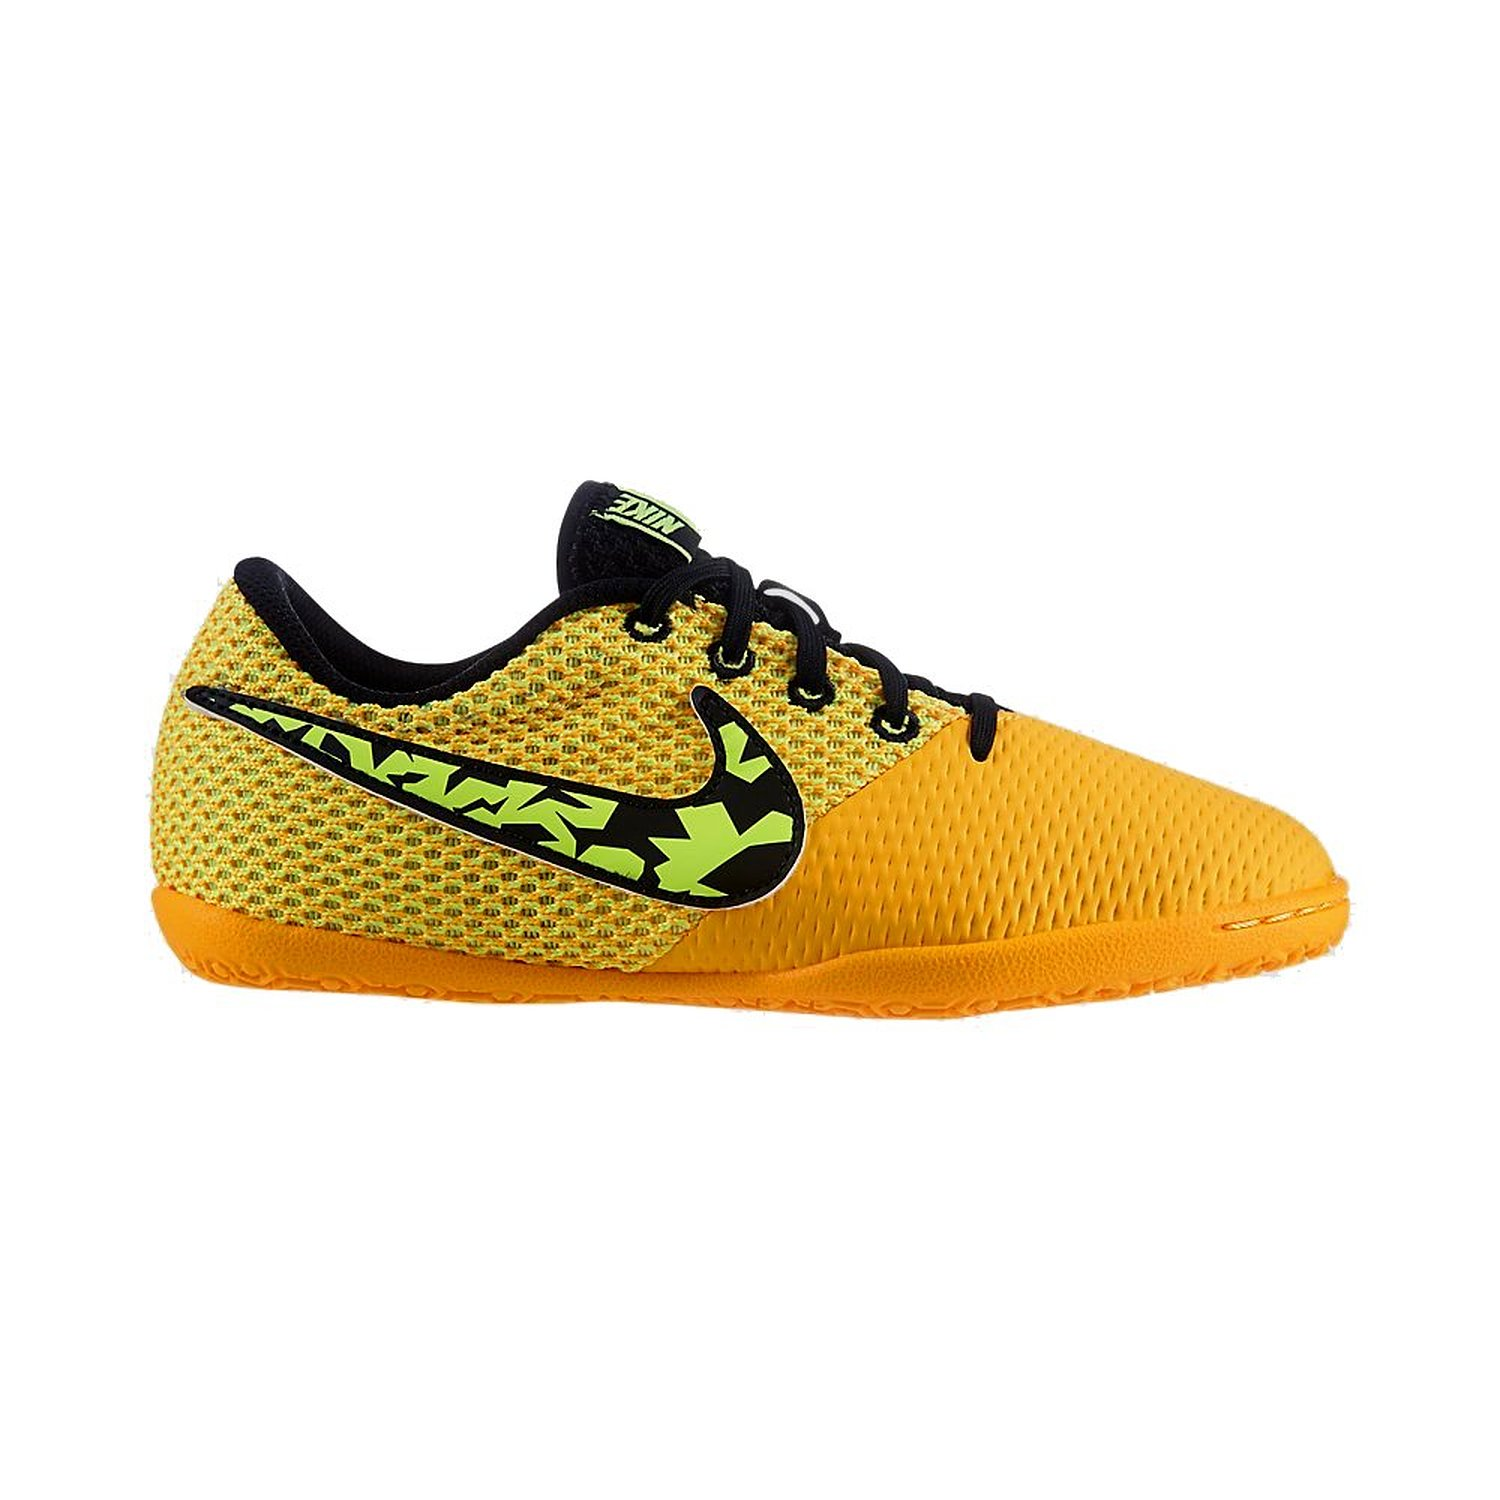 e350f7d7f Get Quotations · Nike Men s Elastico Pro III IC